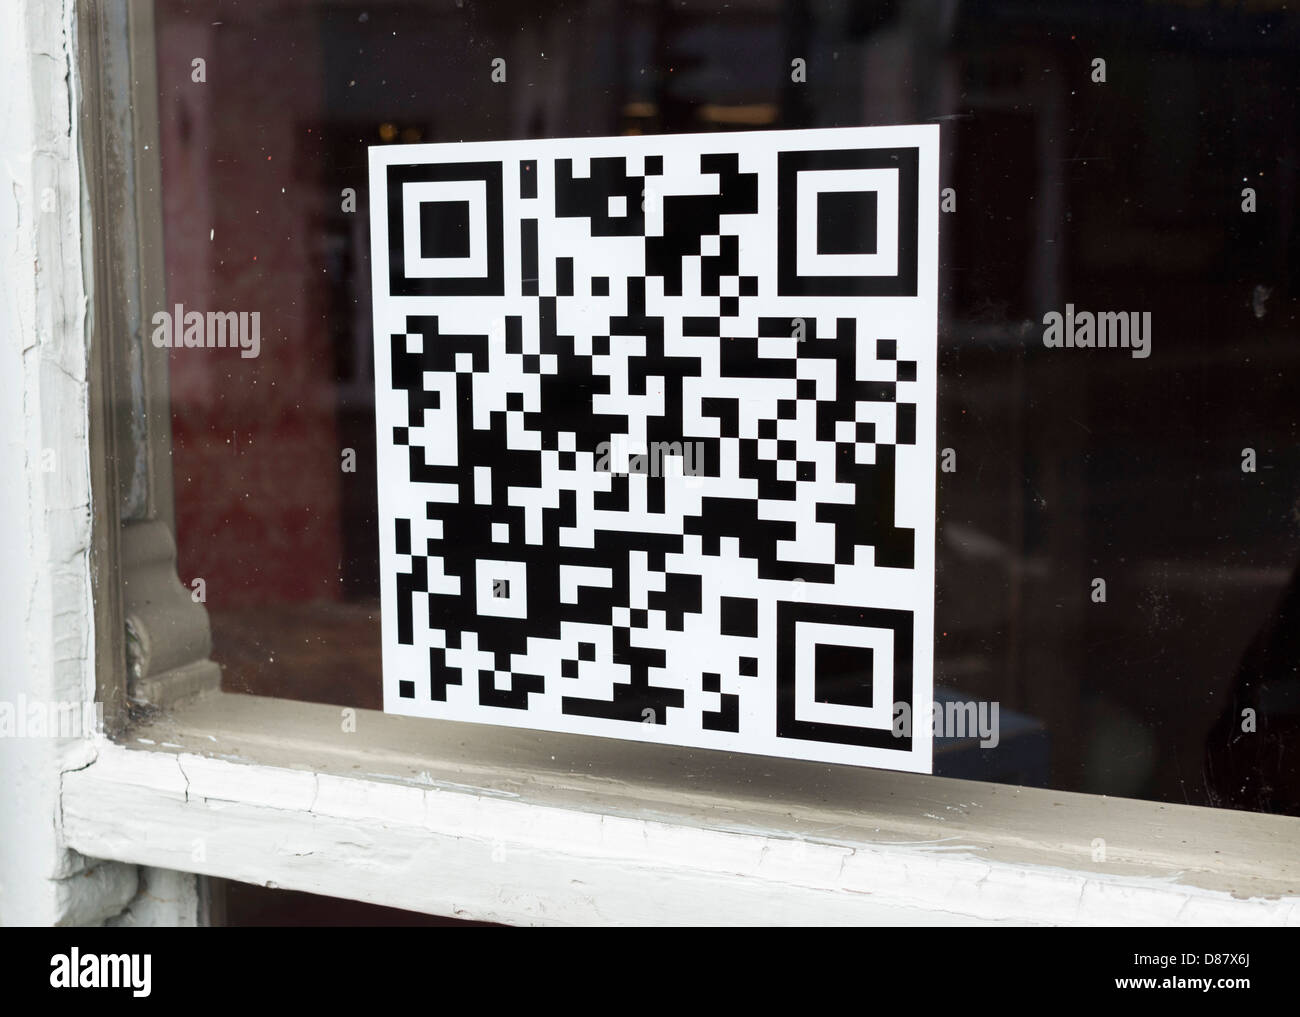 QR code on a window of a shop - Stock Image